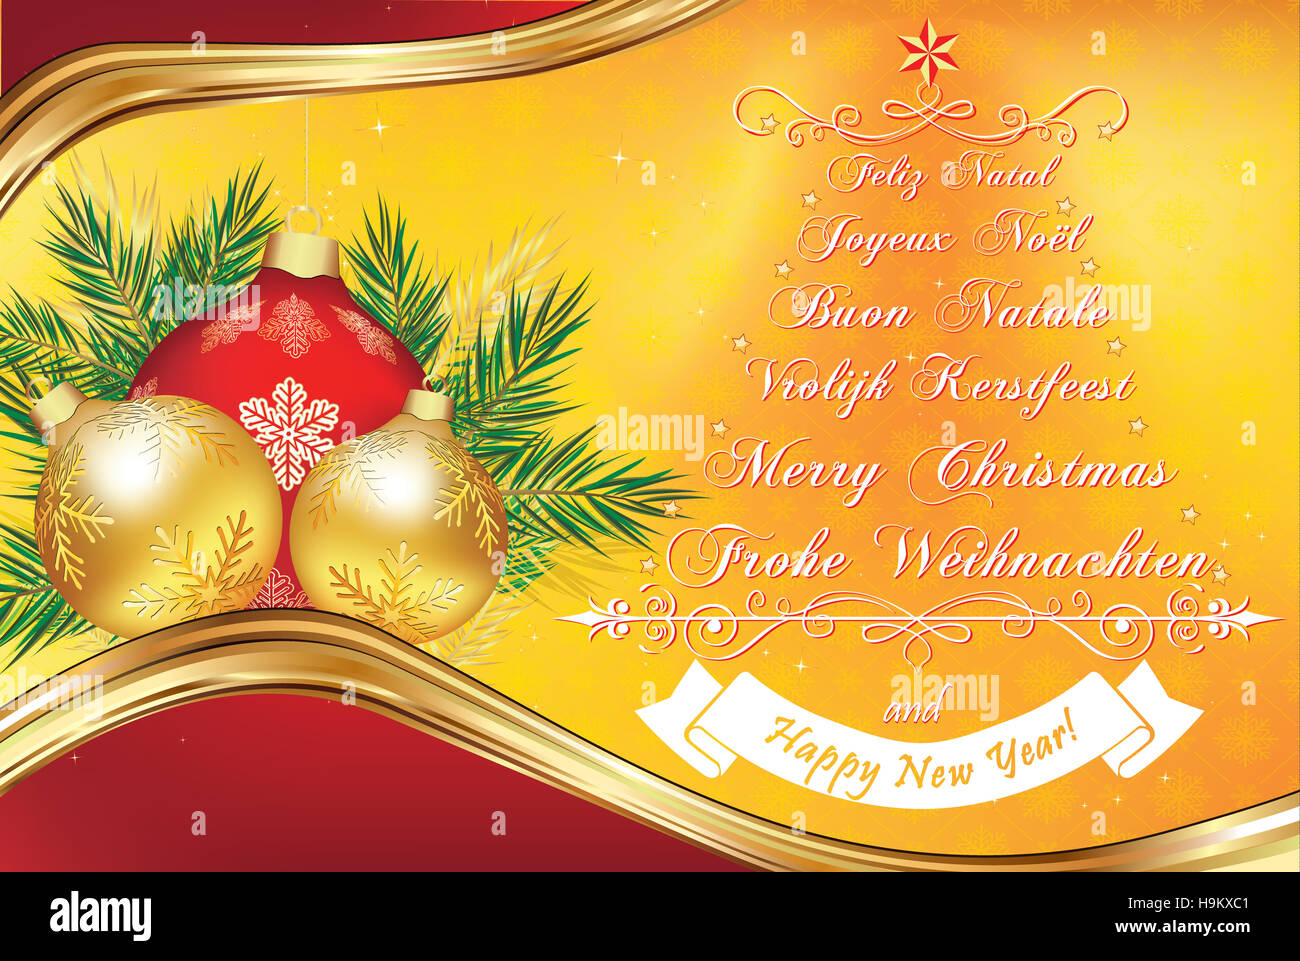 German new year greetings stock photos german new year greetings warm new year greeting card in many languages merry christmas in german english m4hsunfo